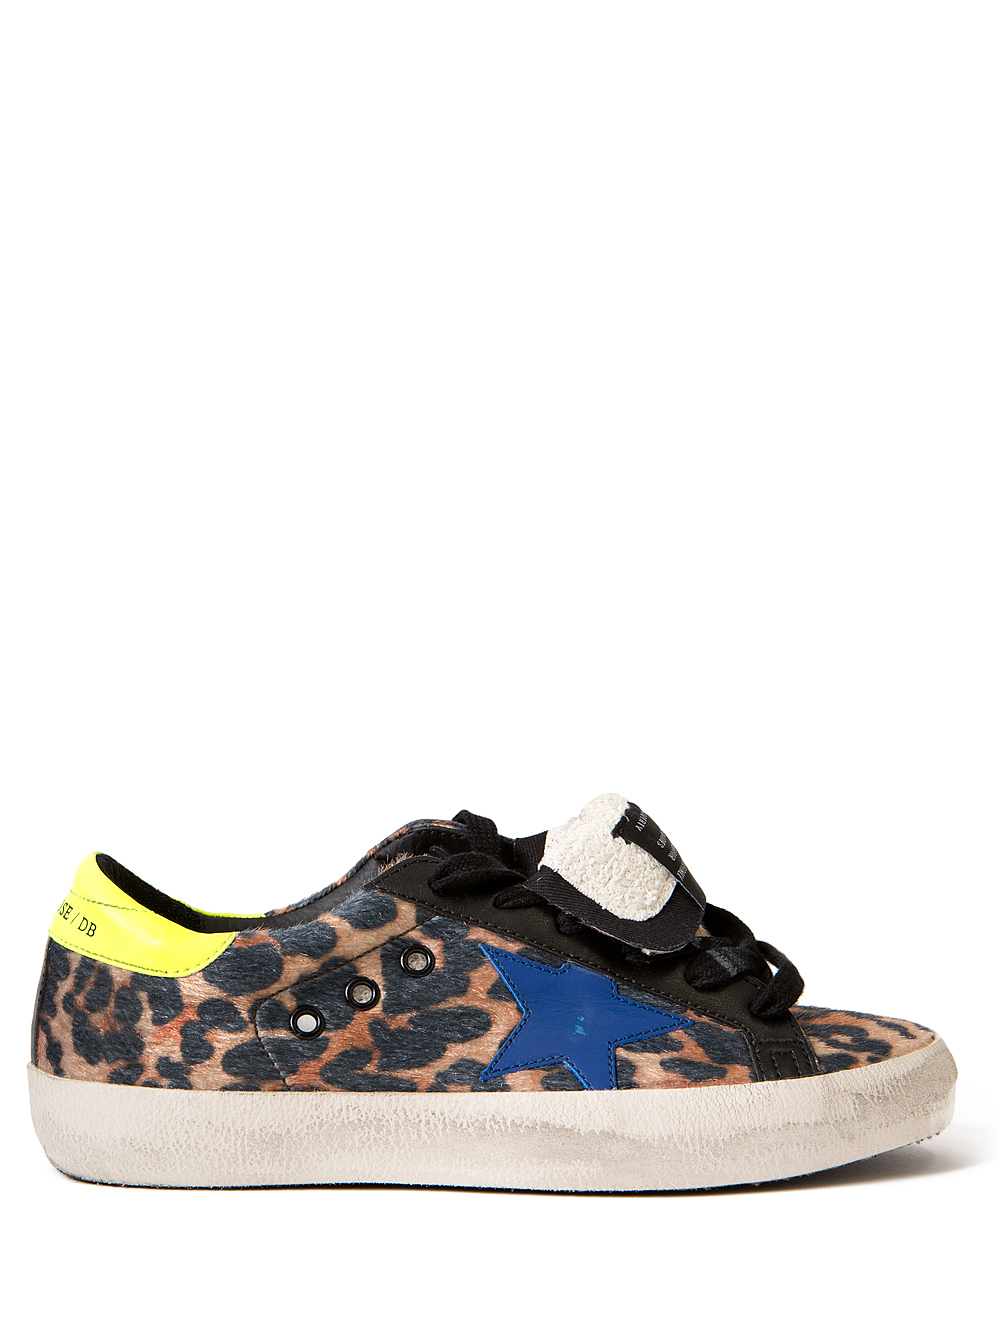 golden goose deluxe brand superstar leopard sneakers in animal lyst. Black Bedroom Furniture Sets. Home Design Ideas